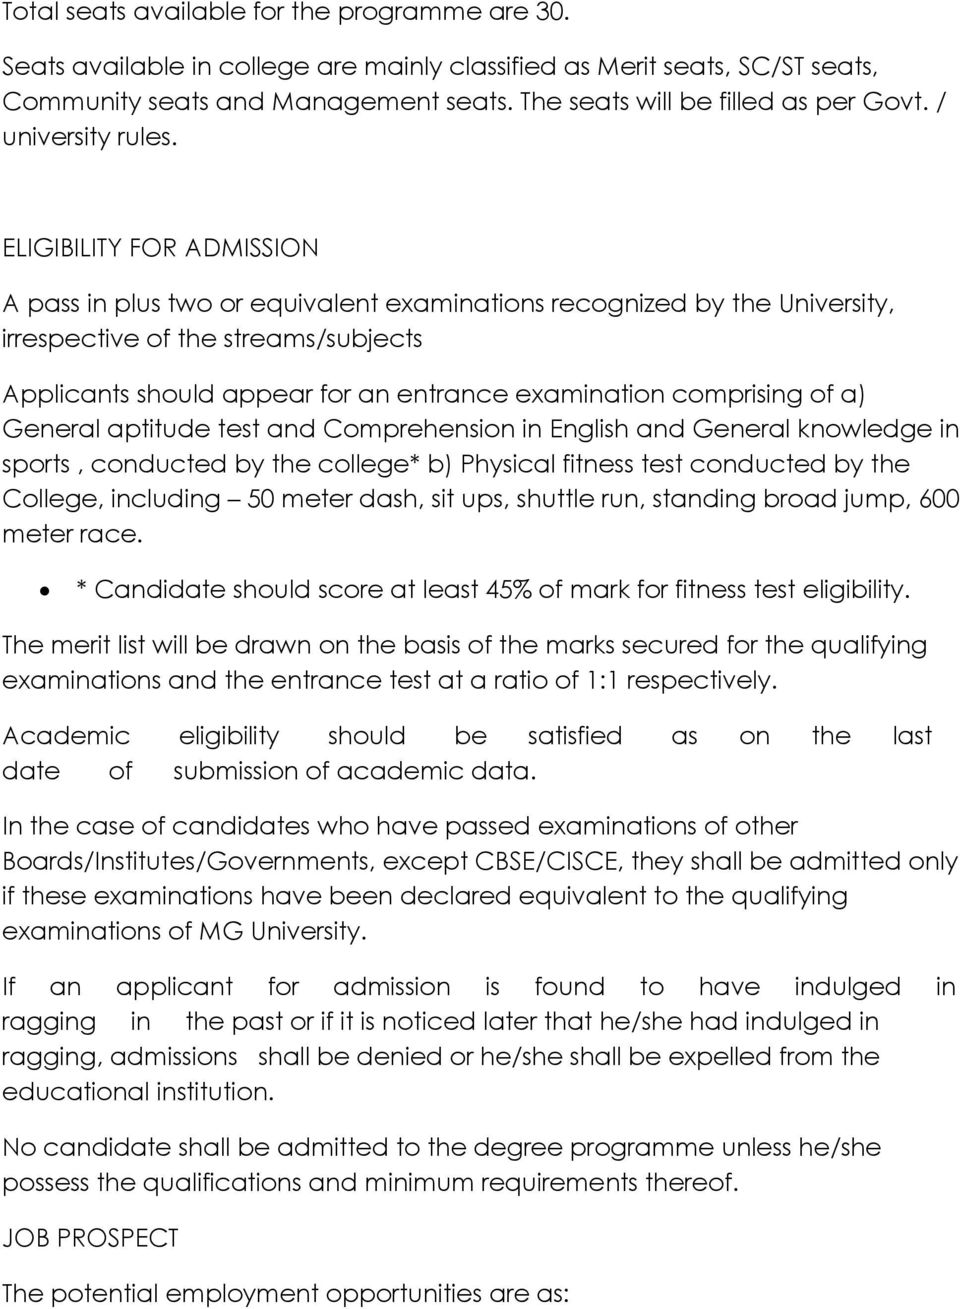 ELIGIBILITY FOR ADMISSION A pass in plus two or equivalent examinations recognized by the University, irrespective of the streams/subjects Applicants should appear for an entrance examination